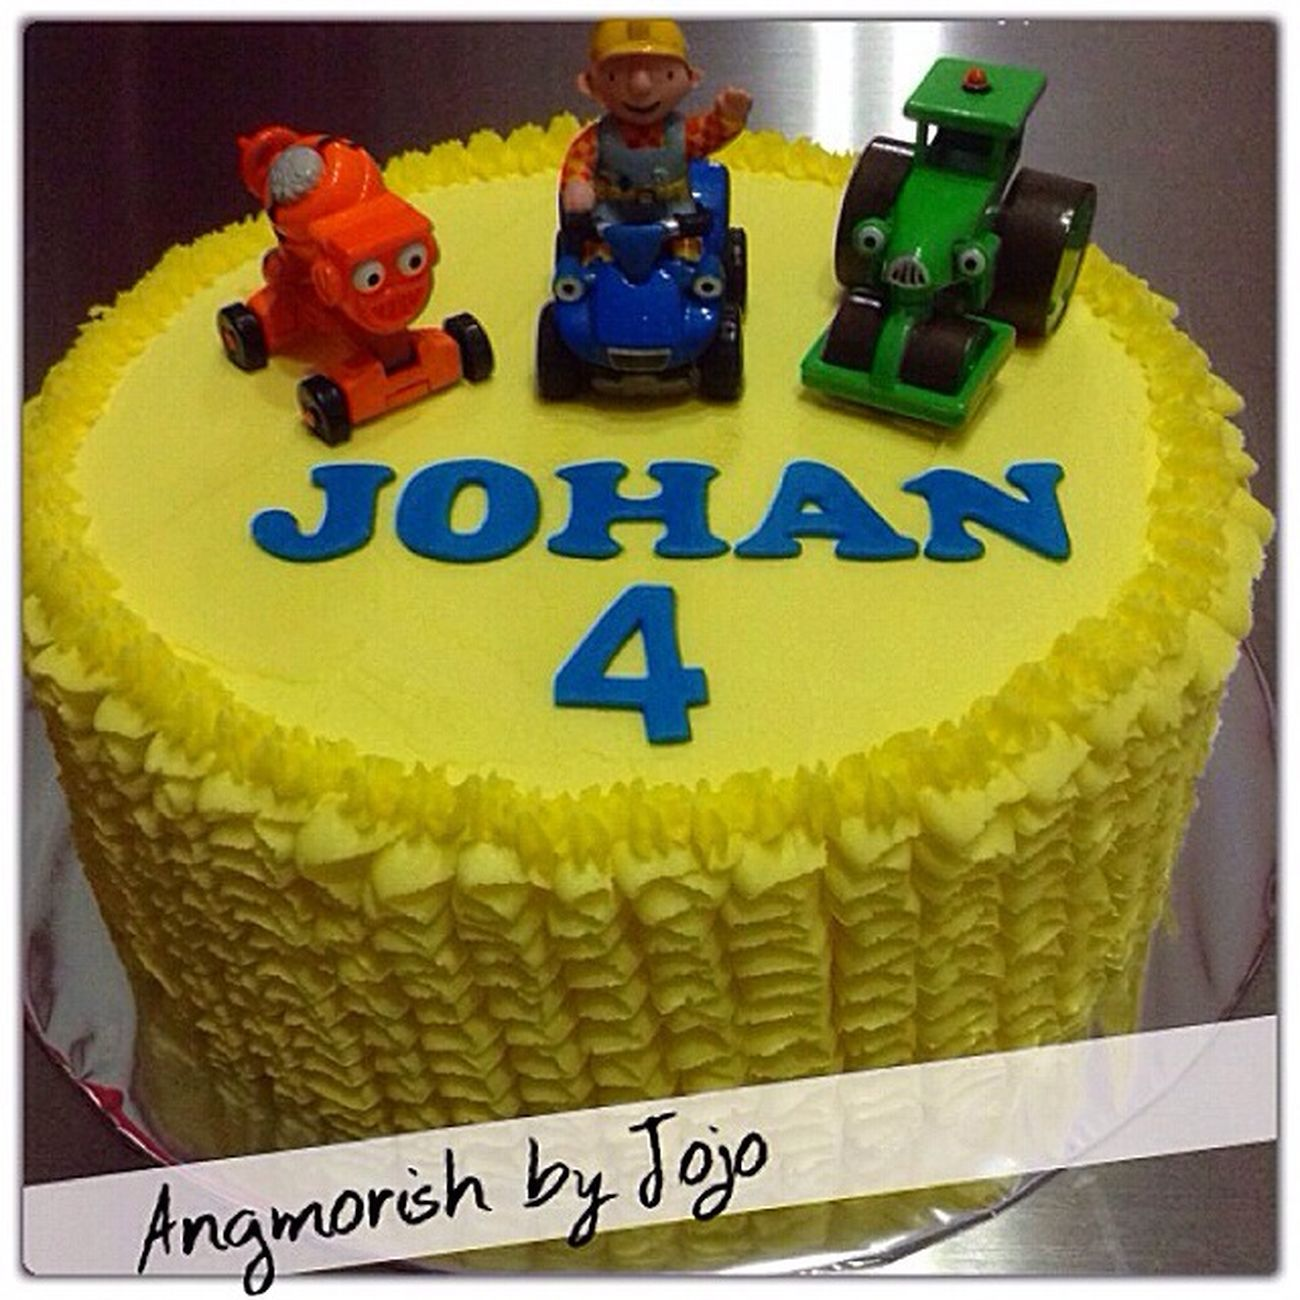 Singapore Birthday Cake Bob The Builder Homemade Cake